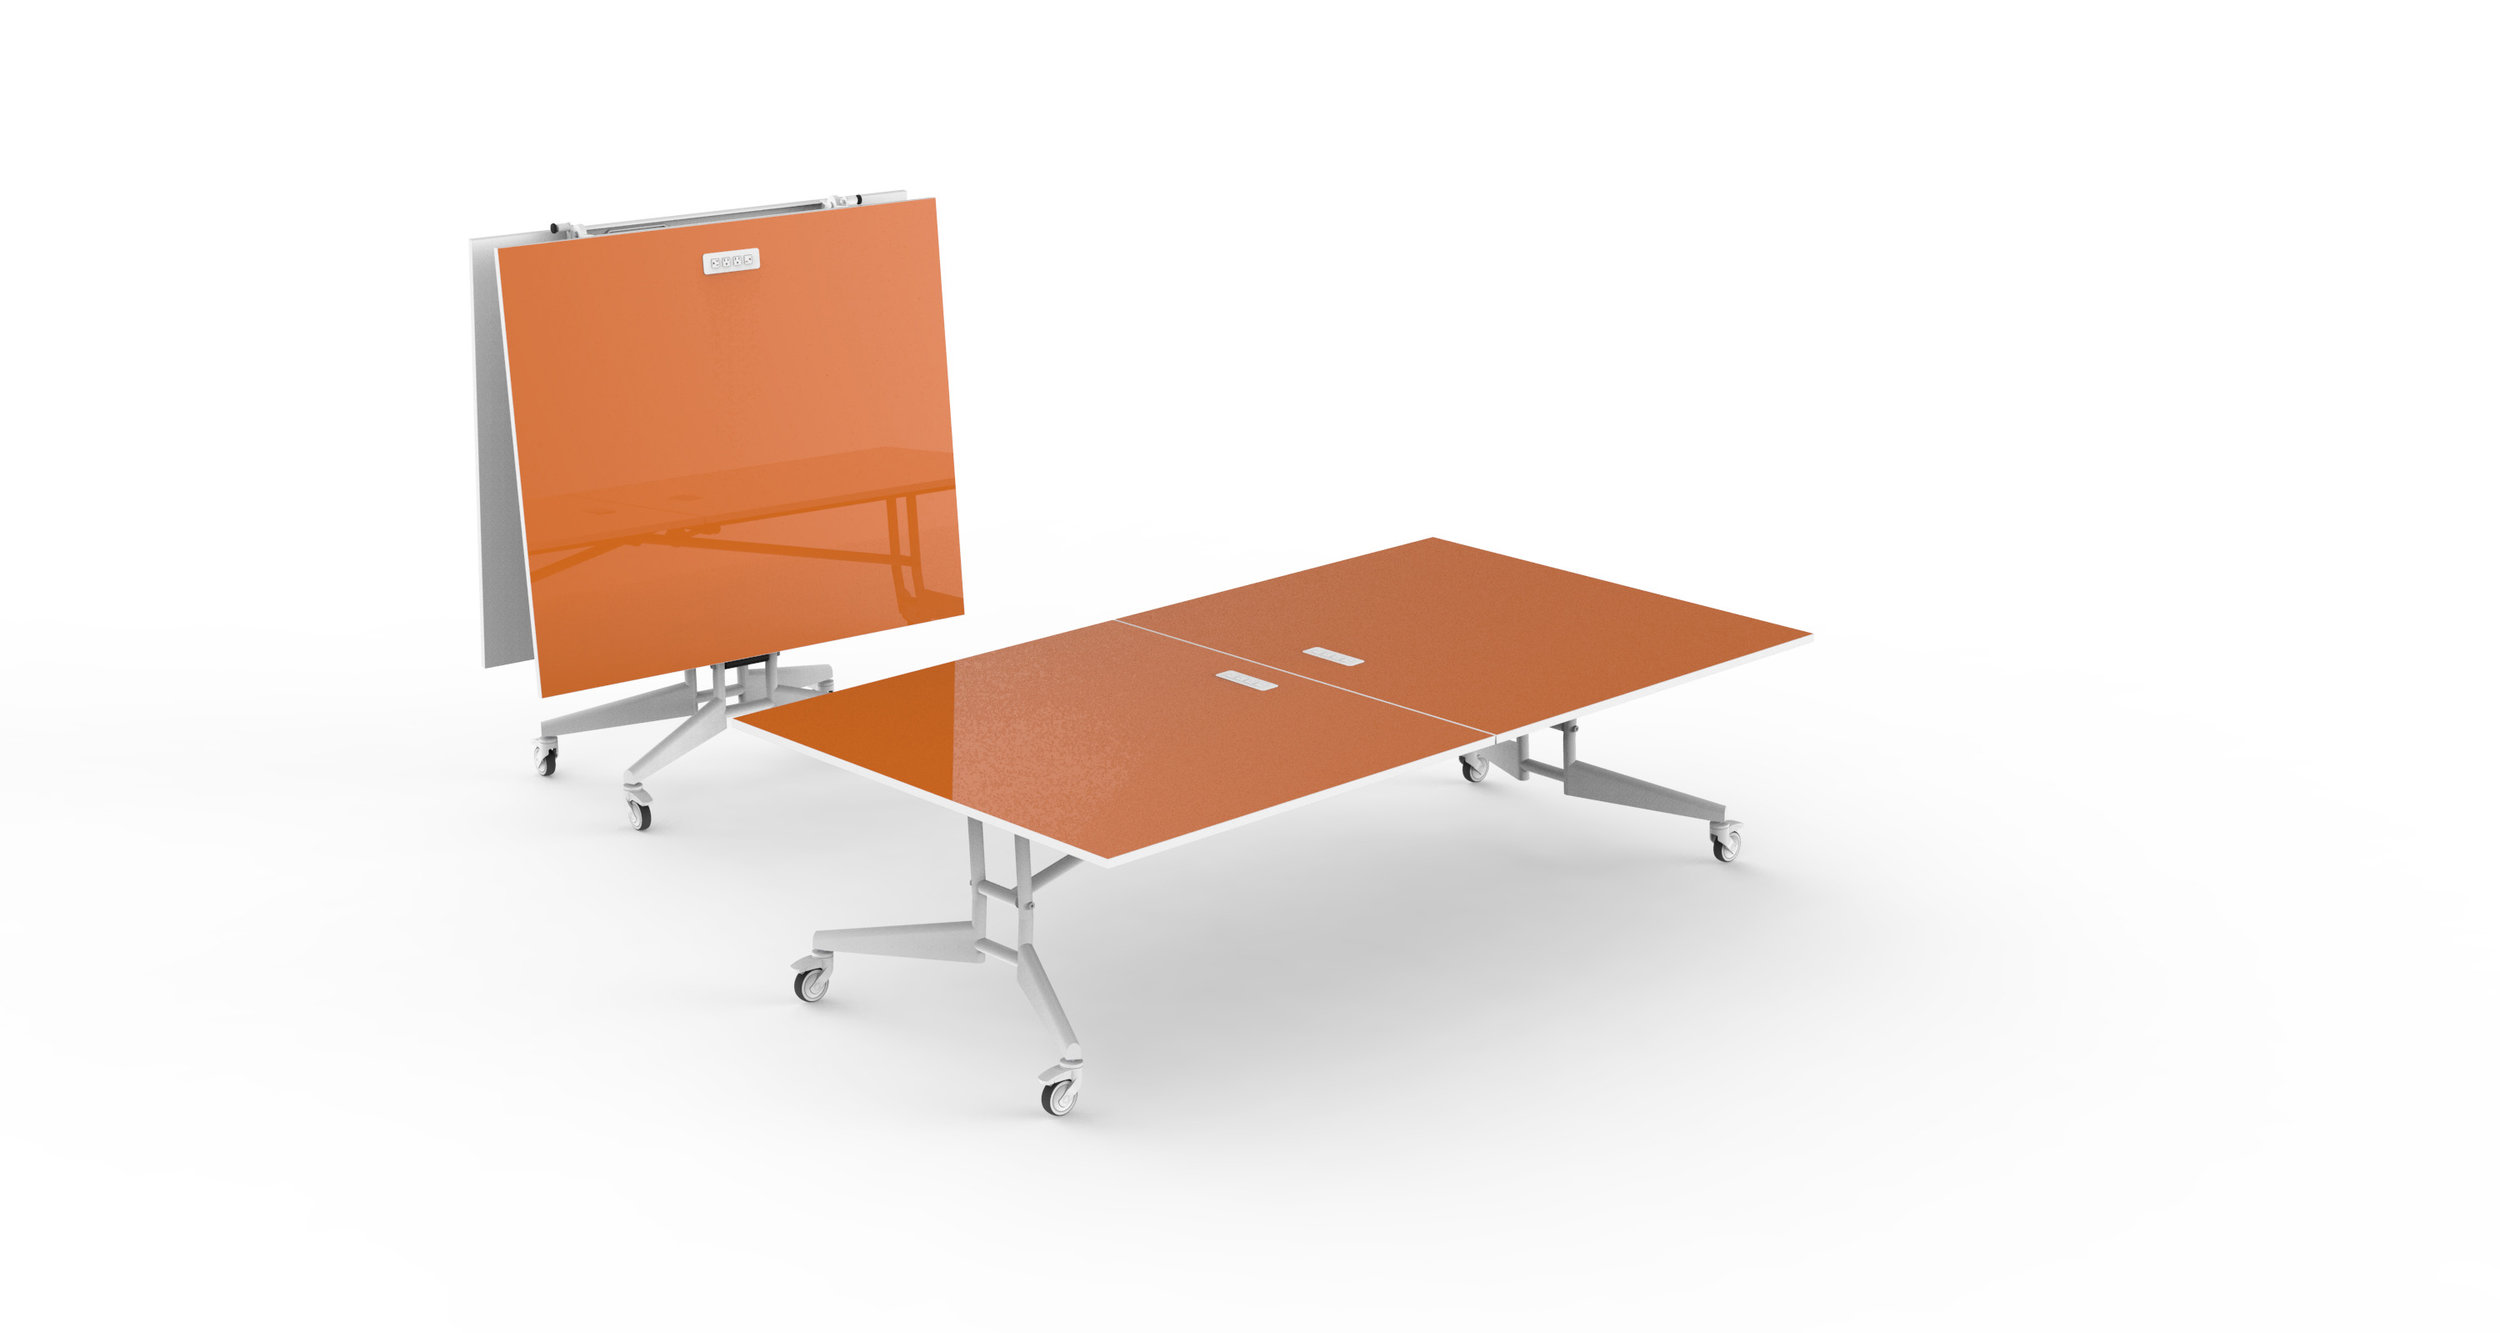 NOMAD Sport Folding Conference Mobile Ping Pong Table